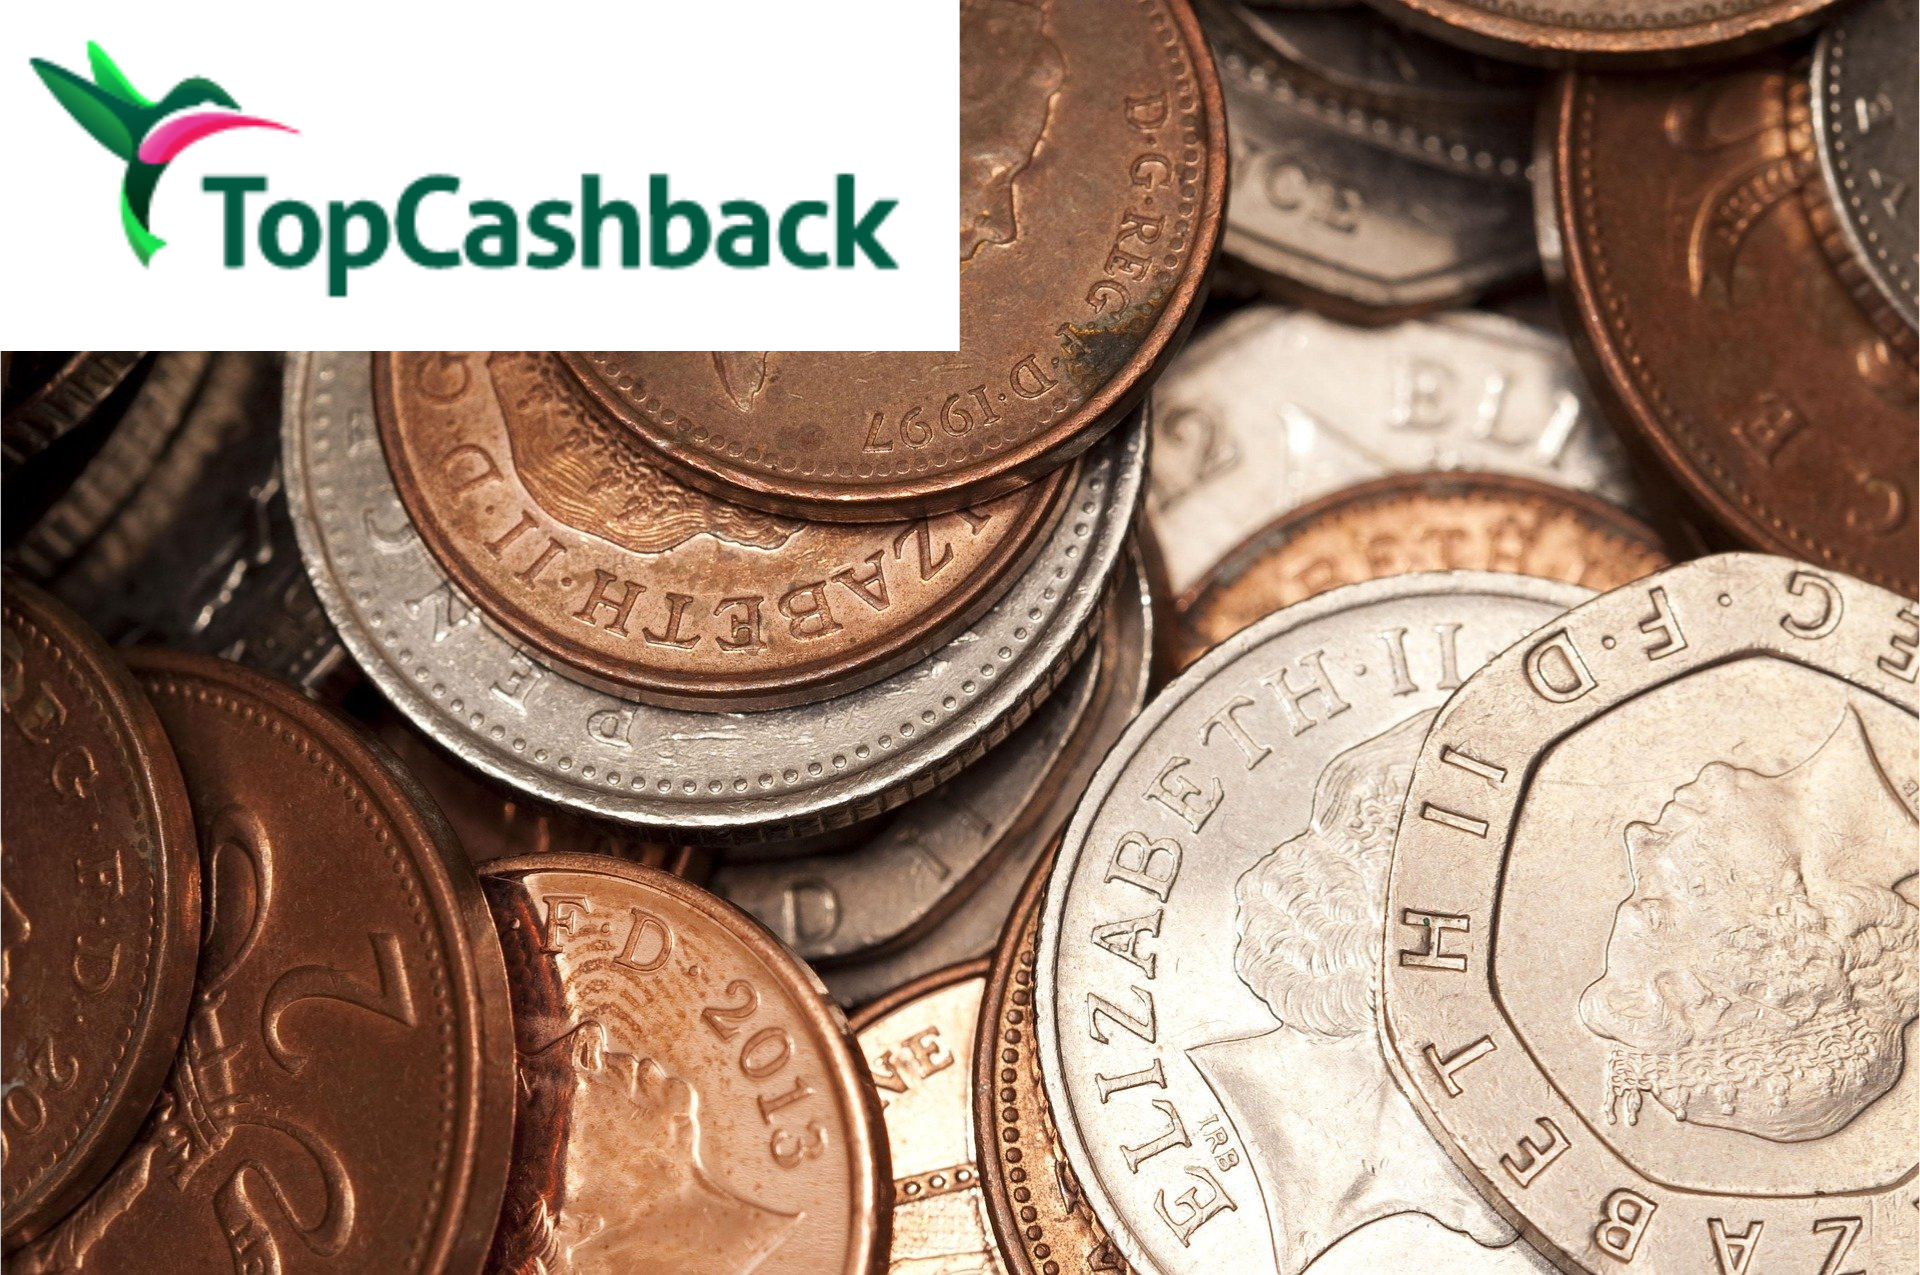 Review of Top Cashback (the best UK cashback site)